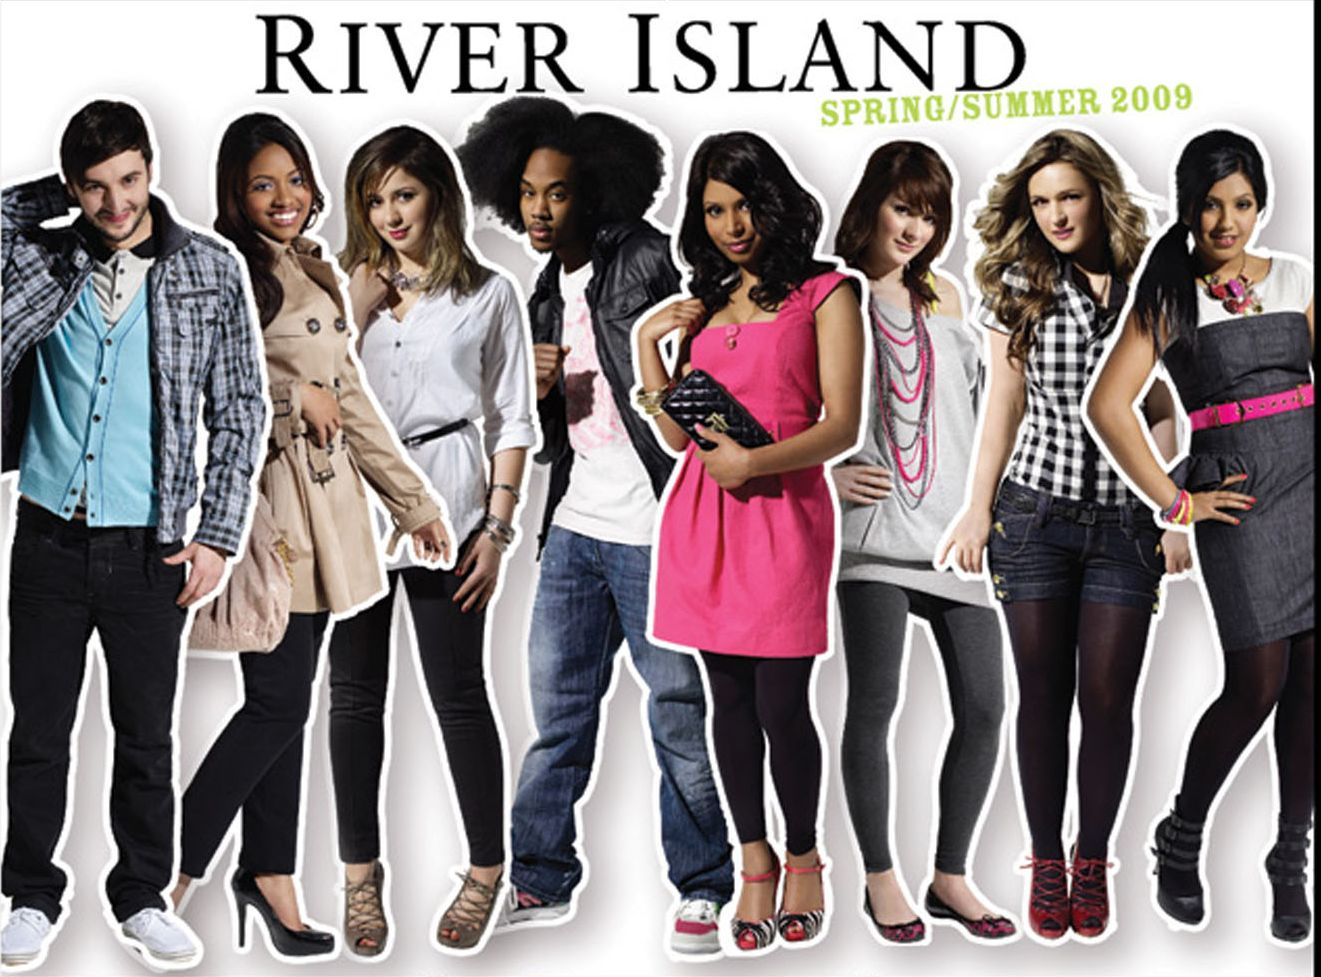 River island clothing for women